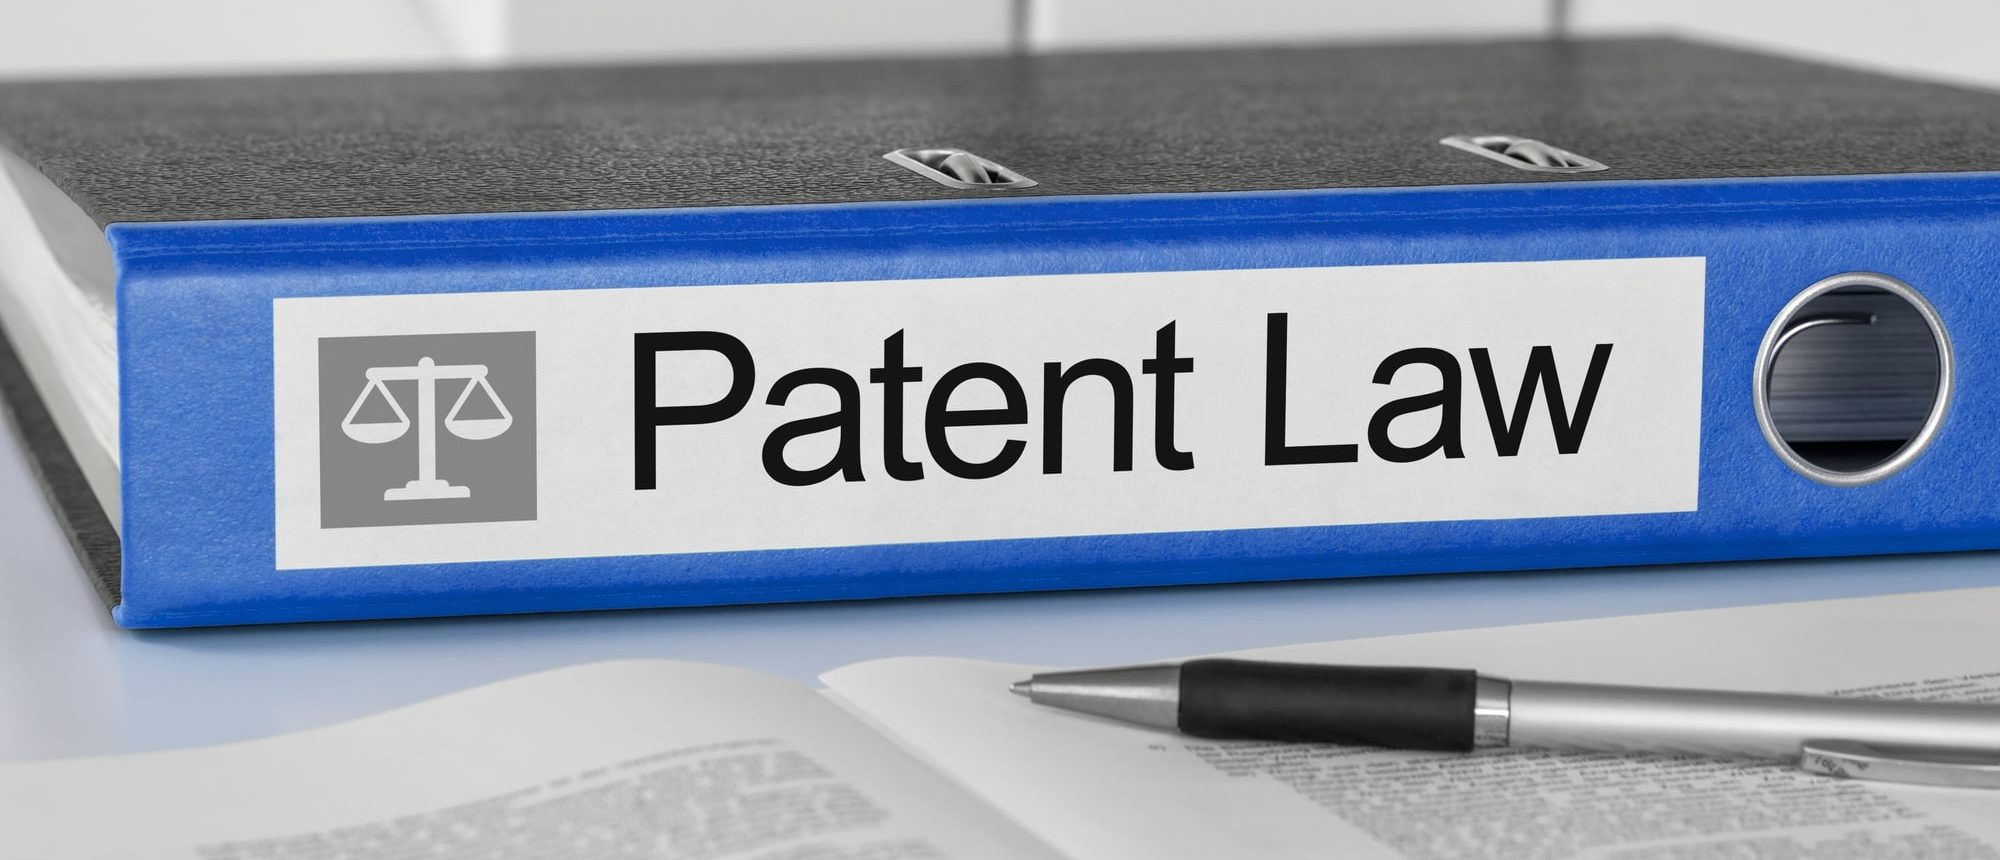 Dallas patent attorney